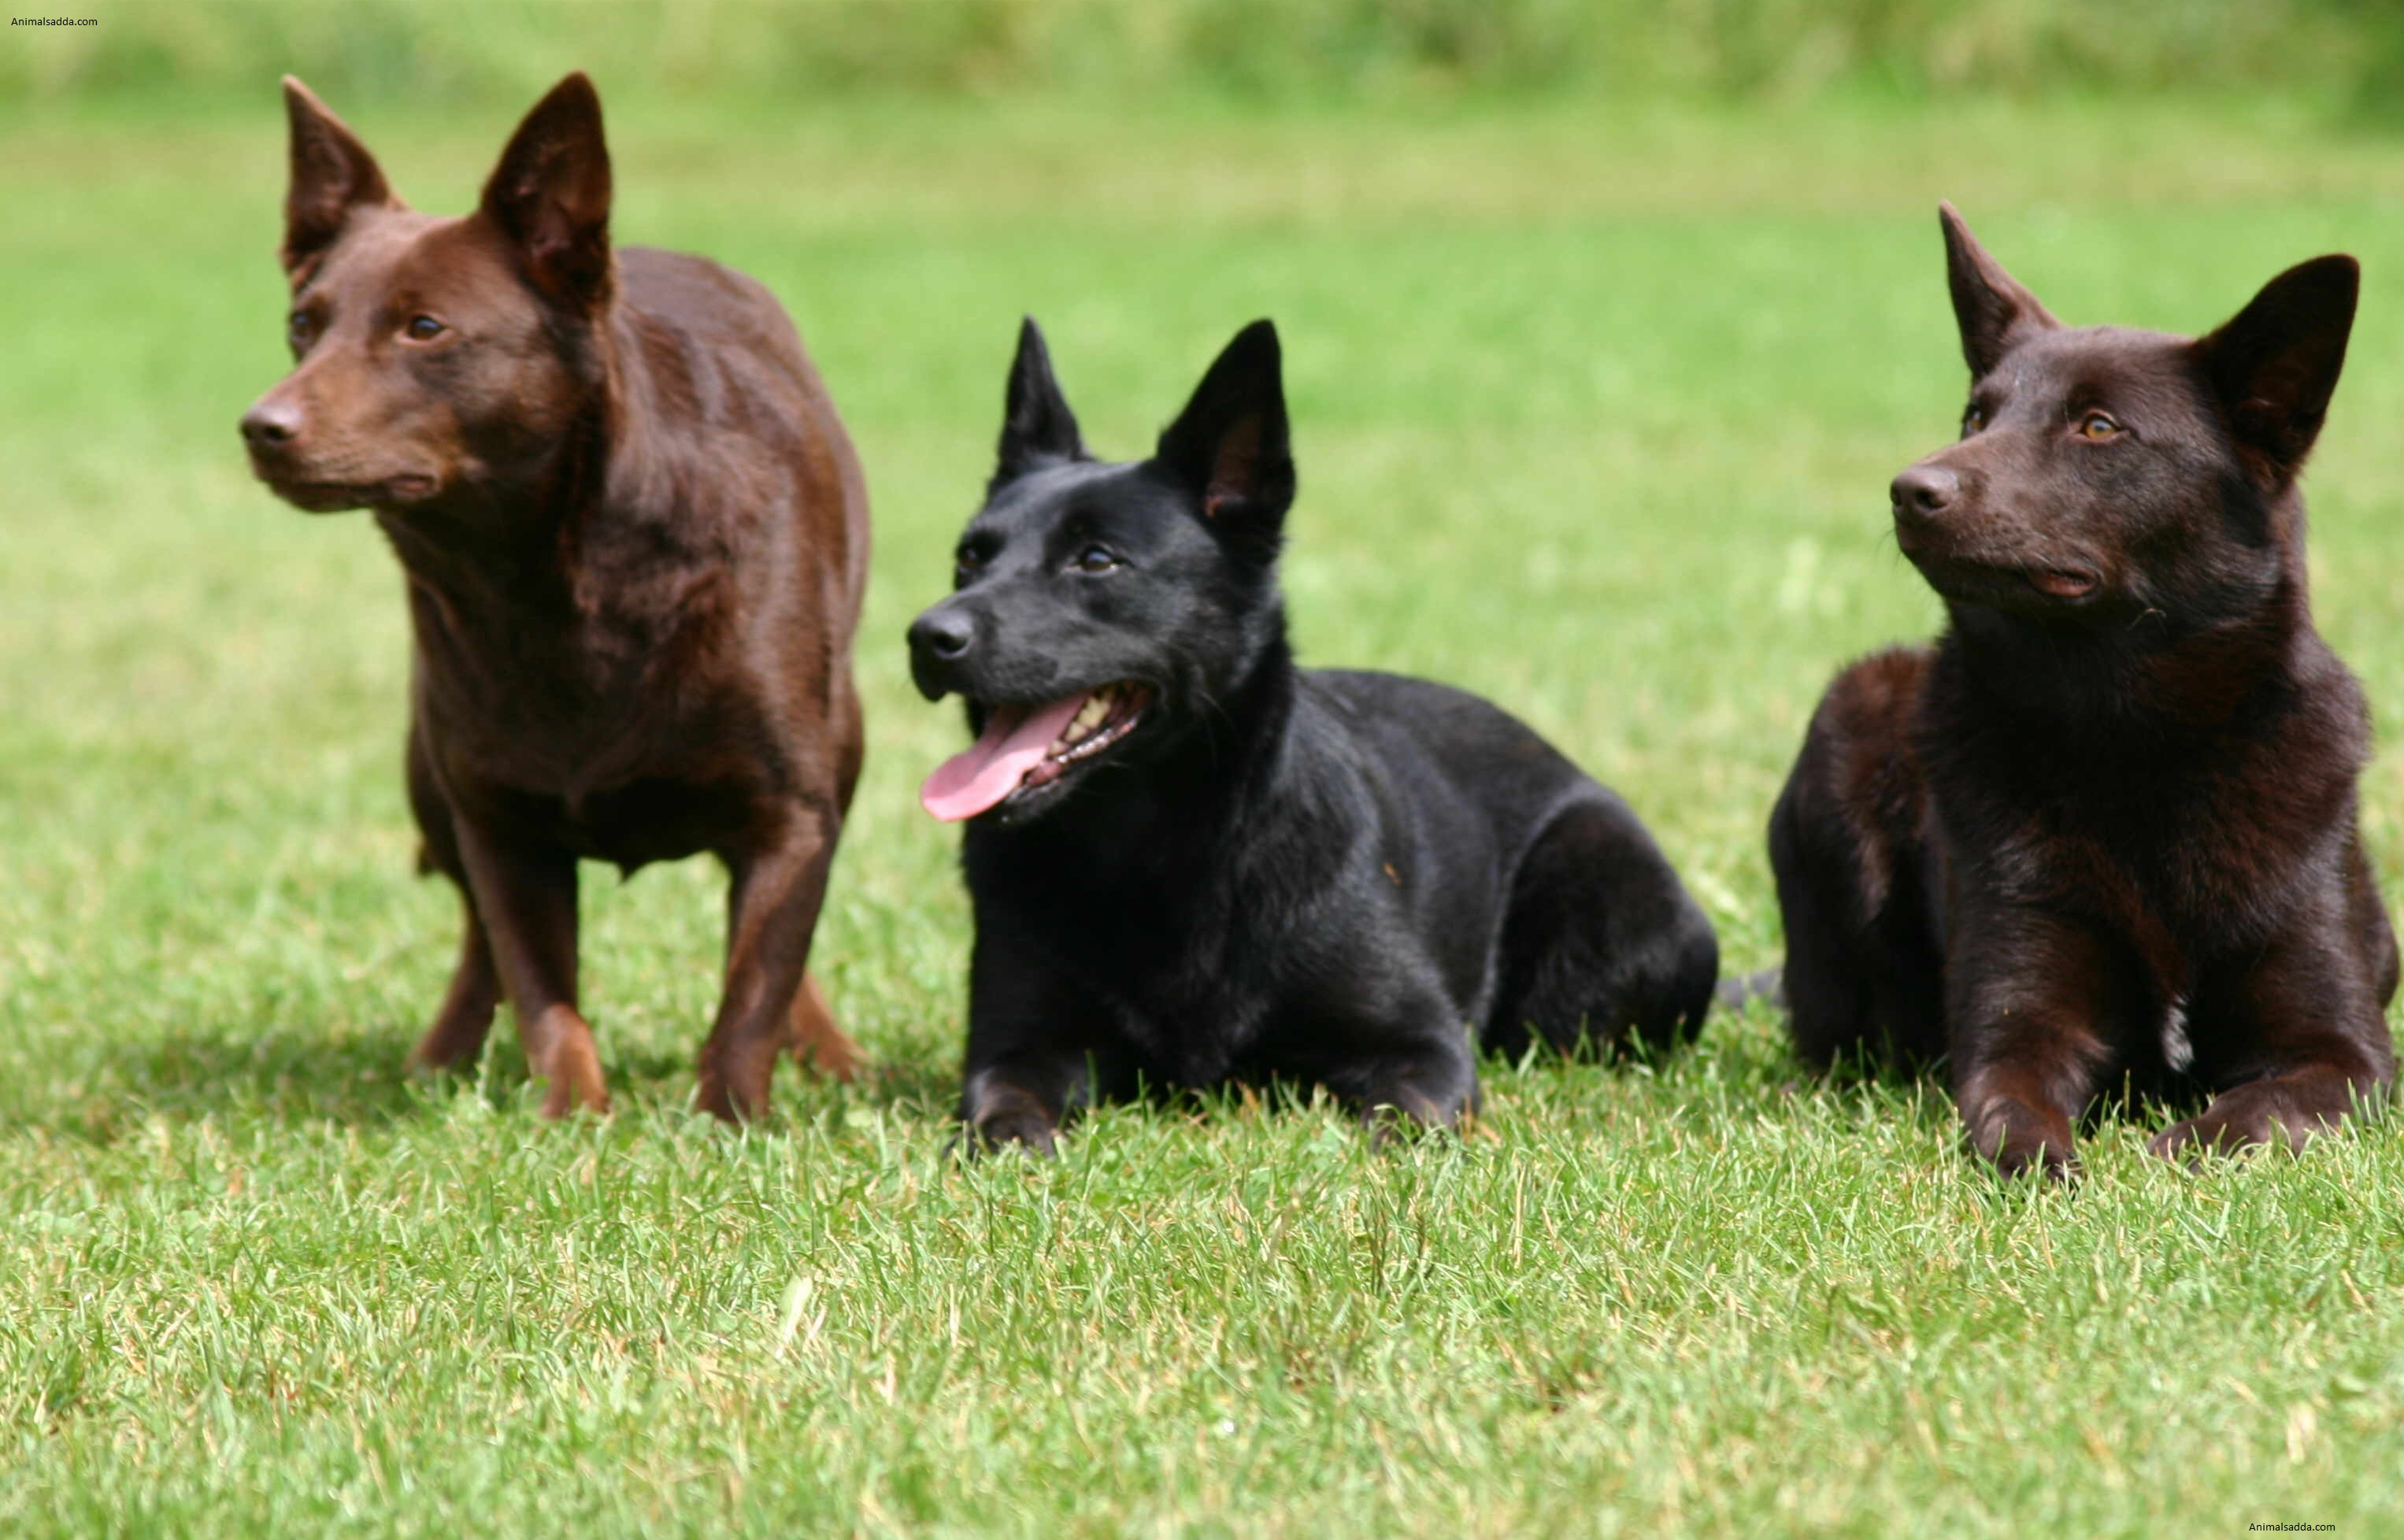 How To Keep Dogs From Breeding